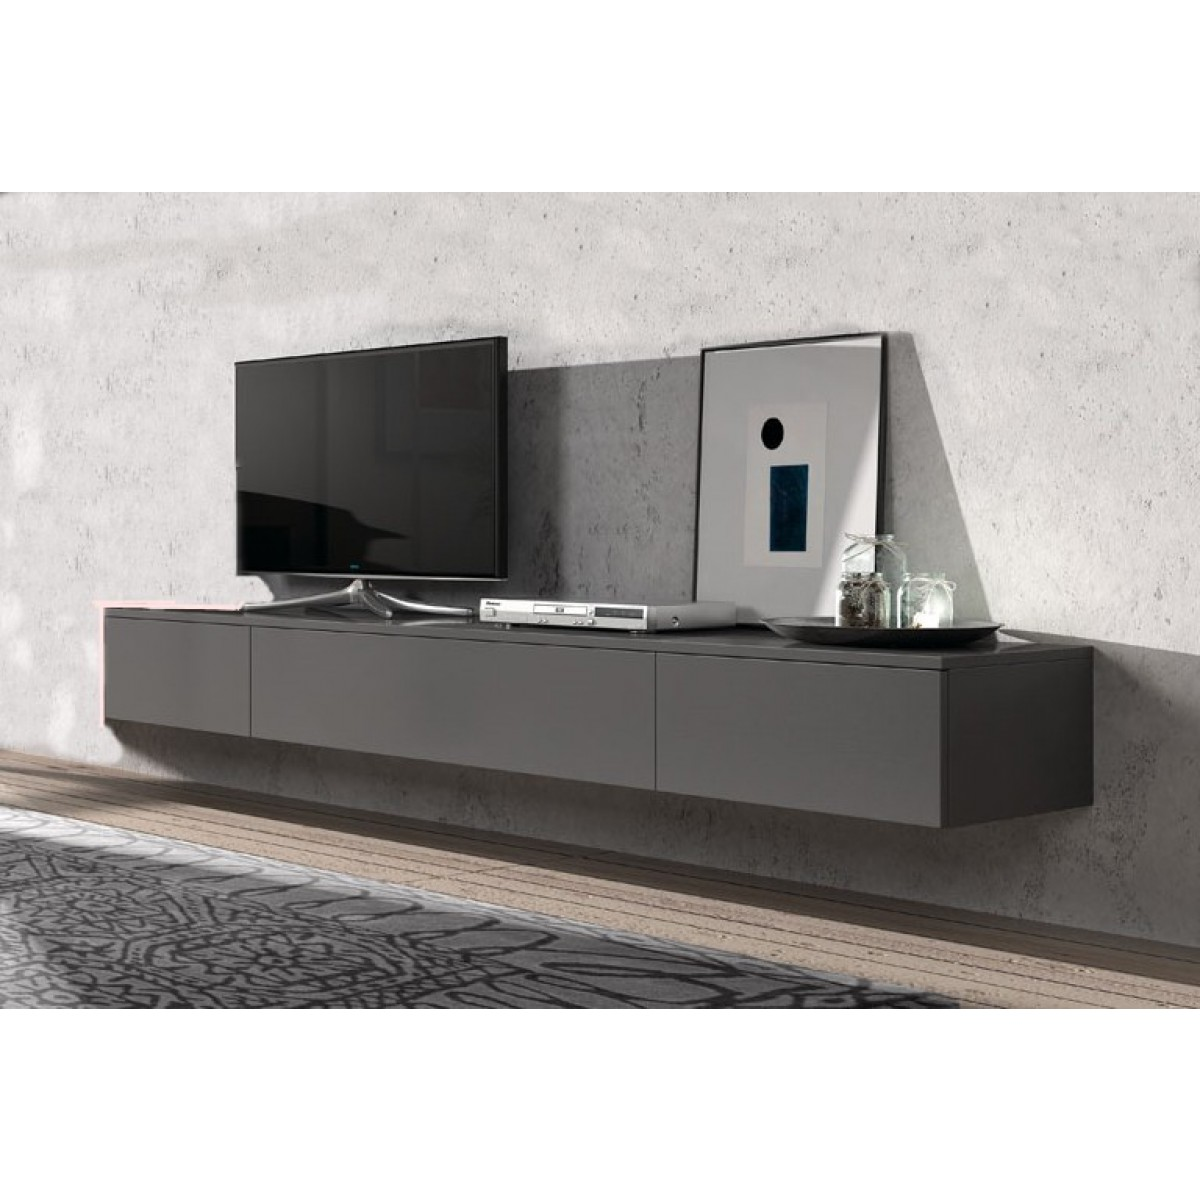 Tv Meubel Hangend.Hang Tv Dressoir Swift 221 Cm I Live Design